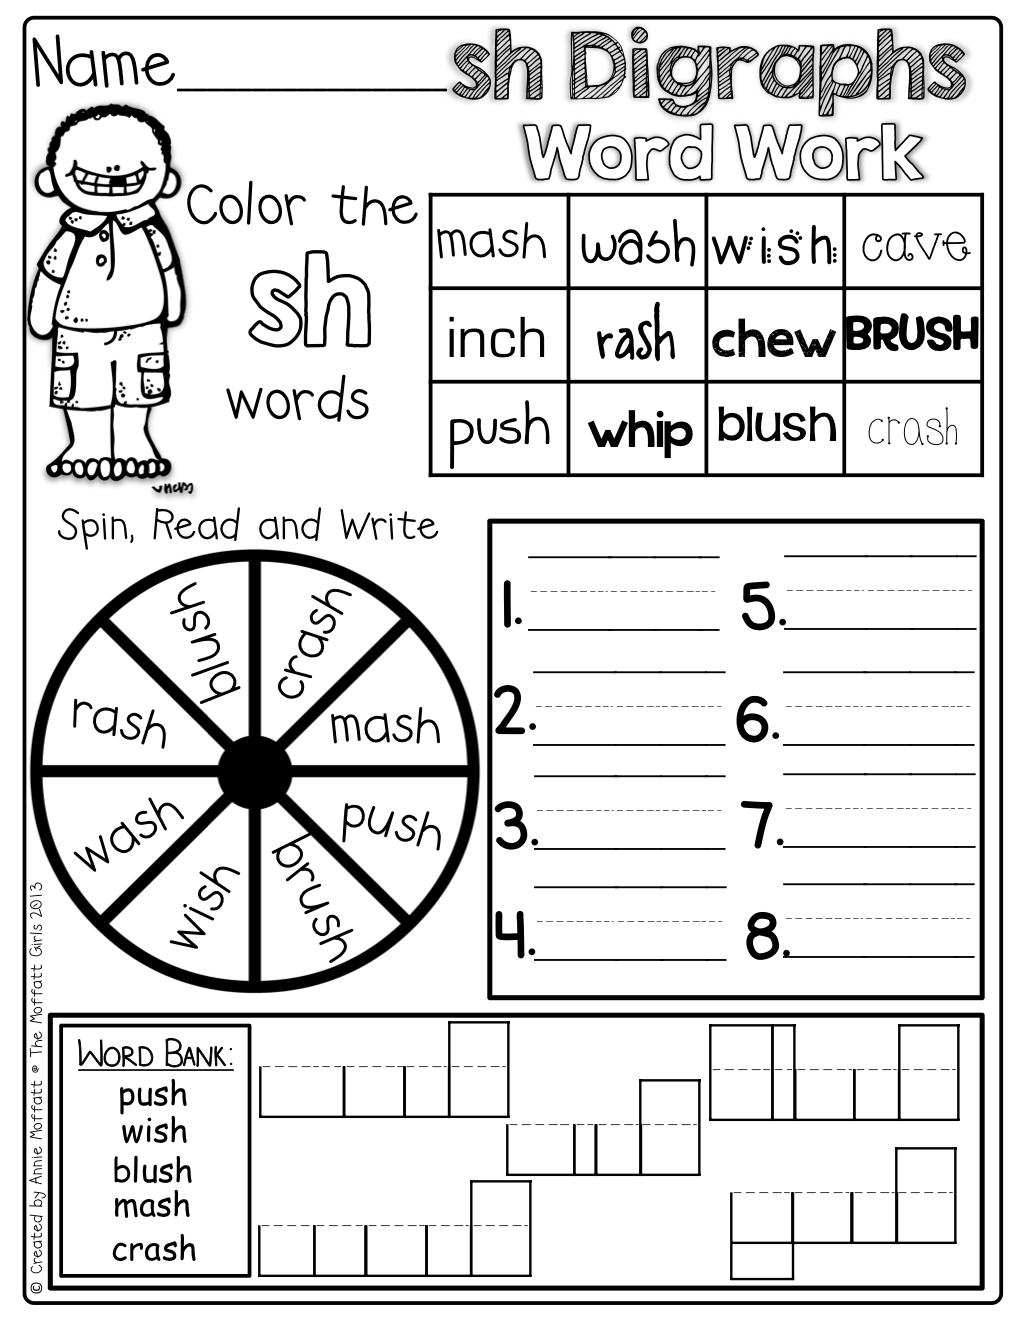 Interactive Digraph Word Work! Color the correct digraph